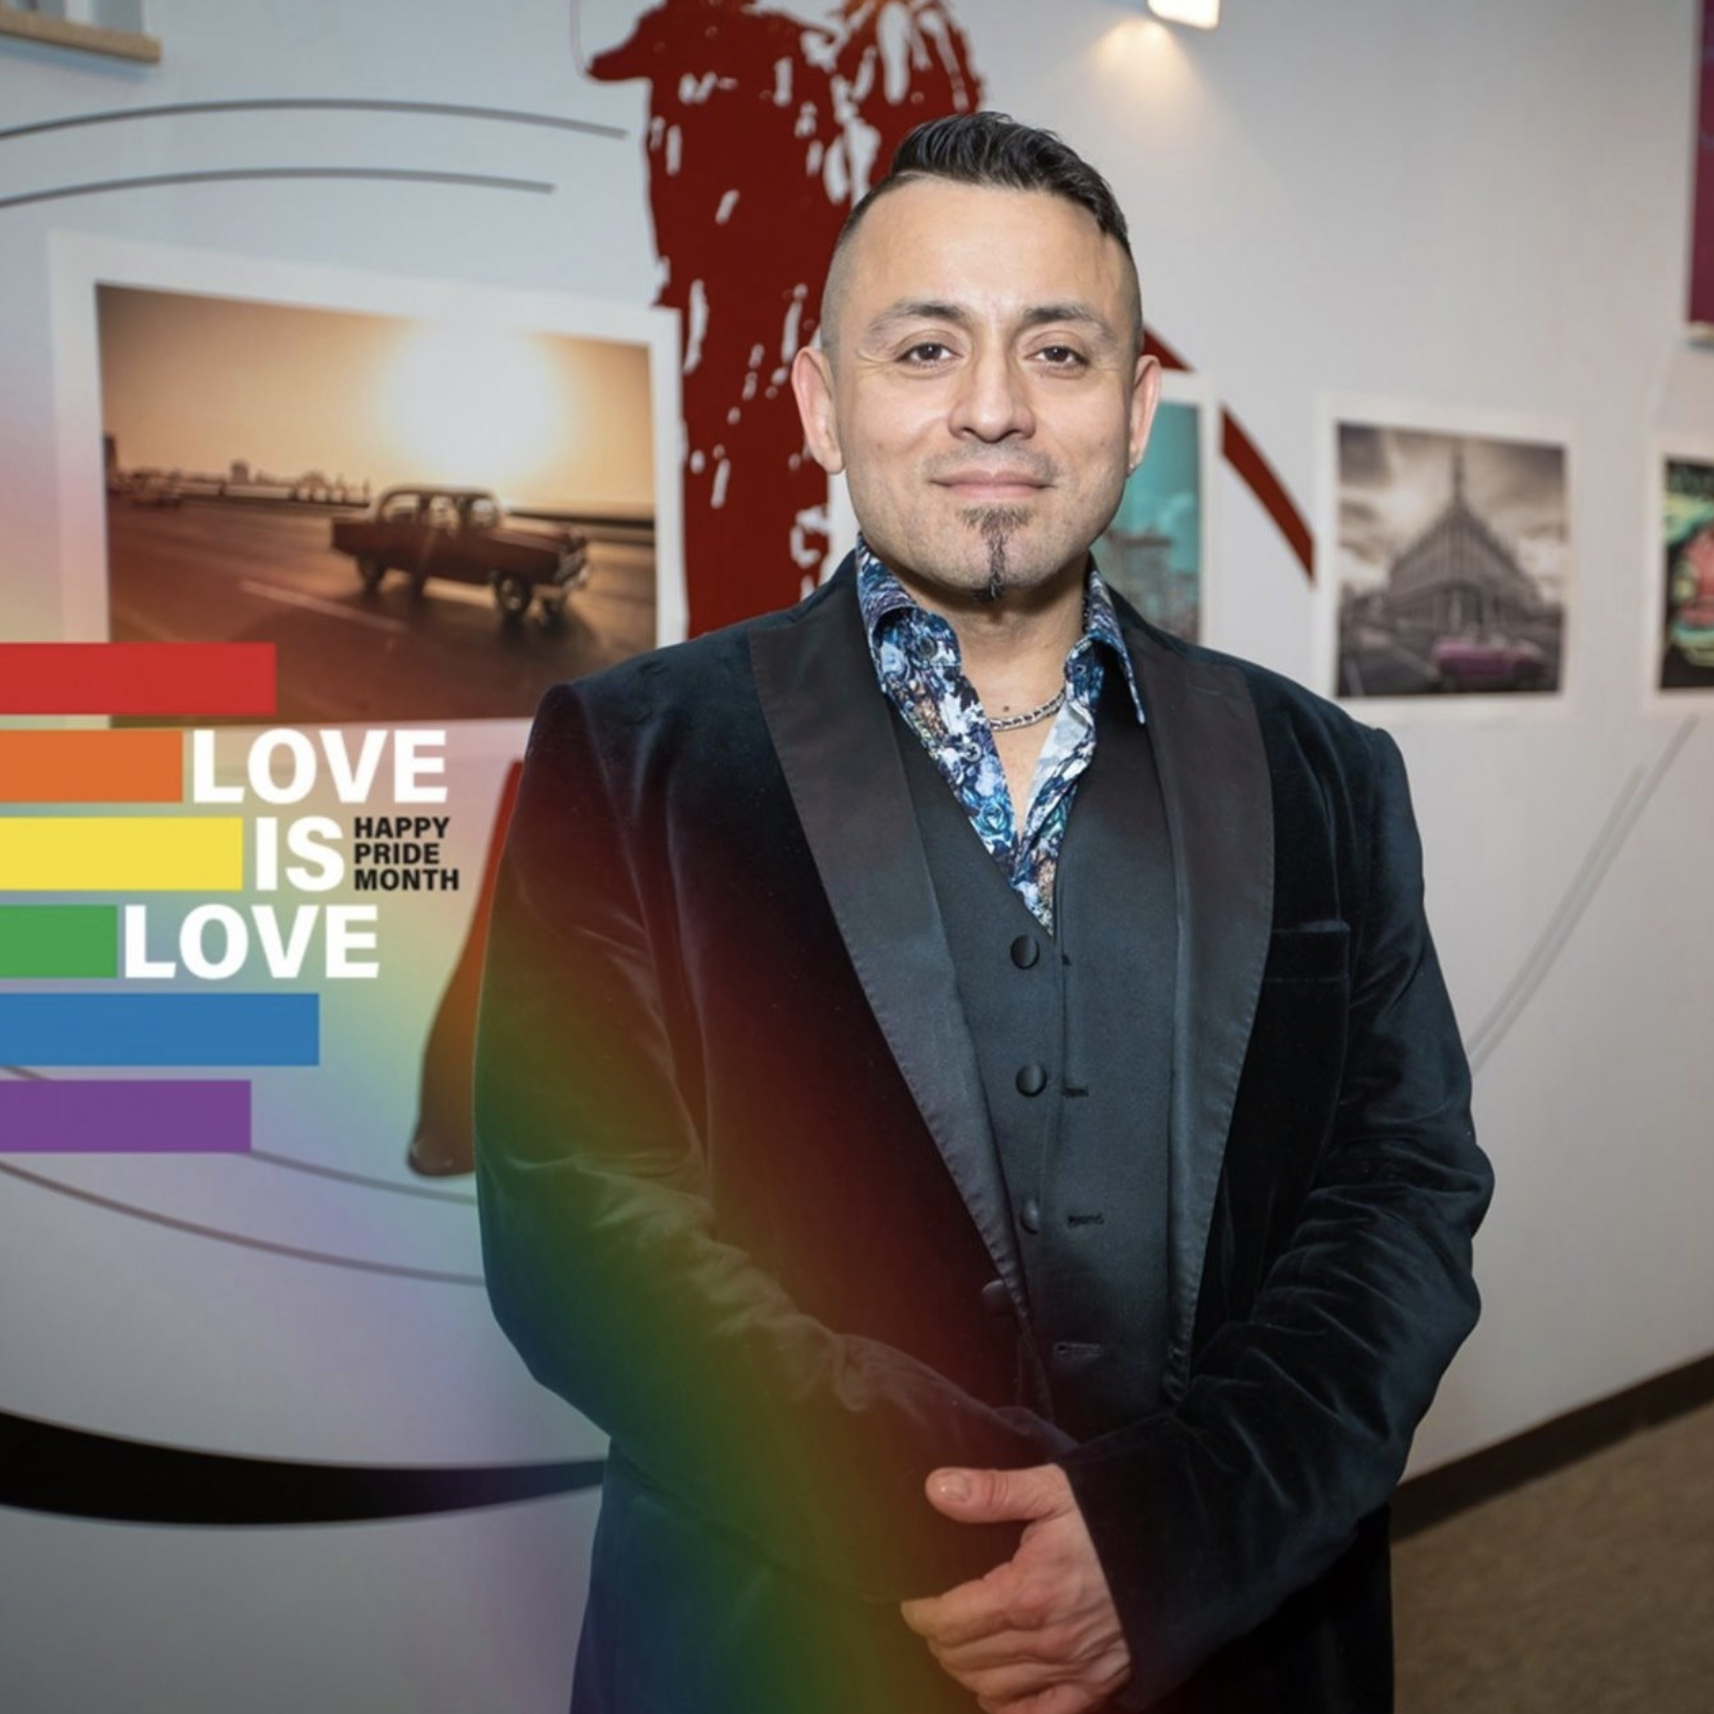 PHOTOGRAPHY DOUBLE FEATURE> 2nd PRIDE IN BUSINESS June 19 2-6PM The Berkely Bicycle Club + 9th 10×10 PHOTOGRAPHY PROJECT June20 7-10PM The Gladstone Hotel sneek peek…